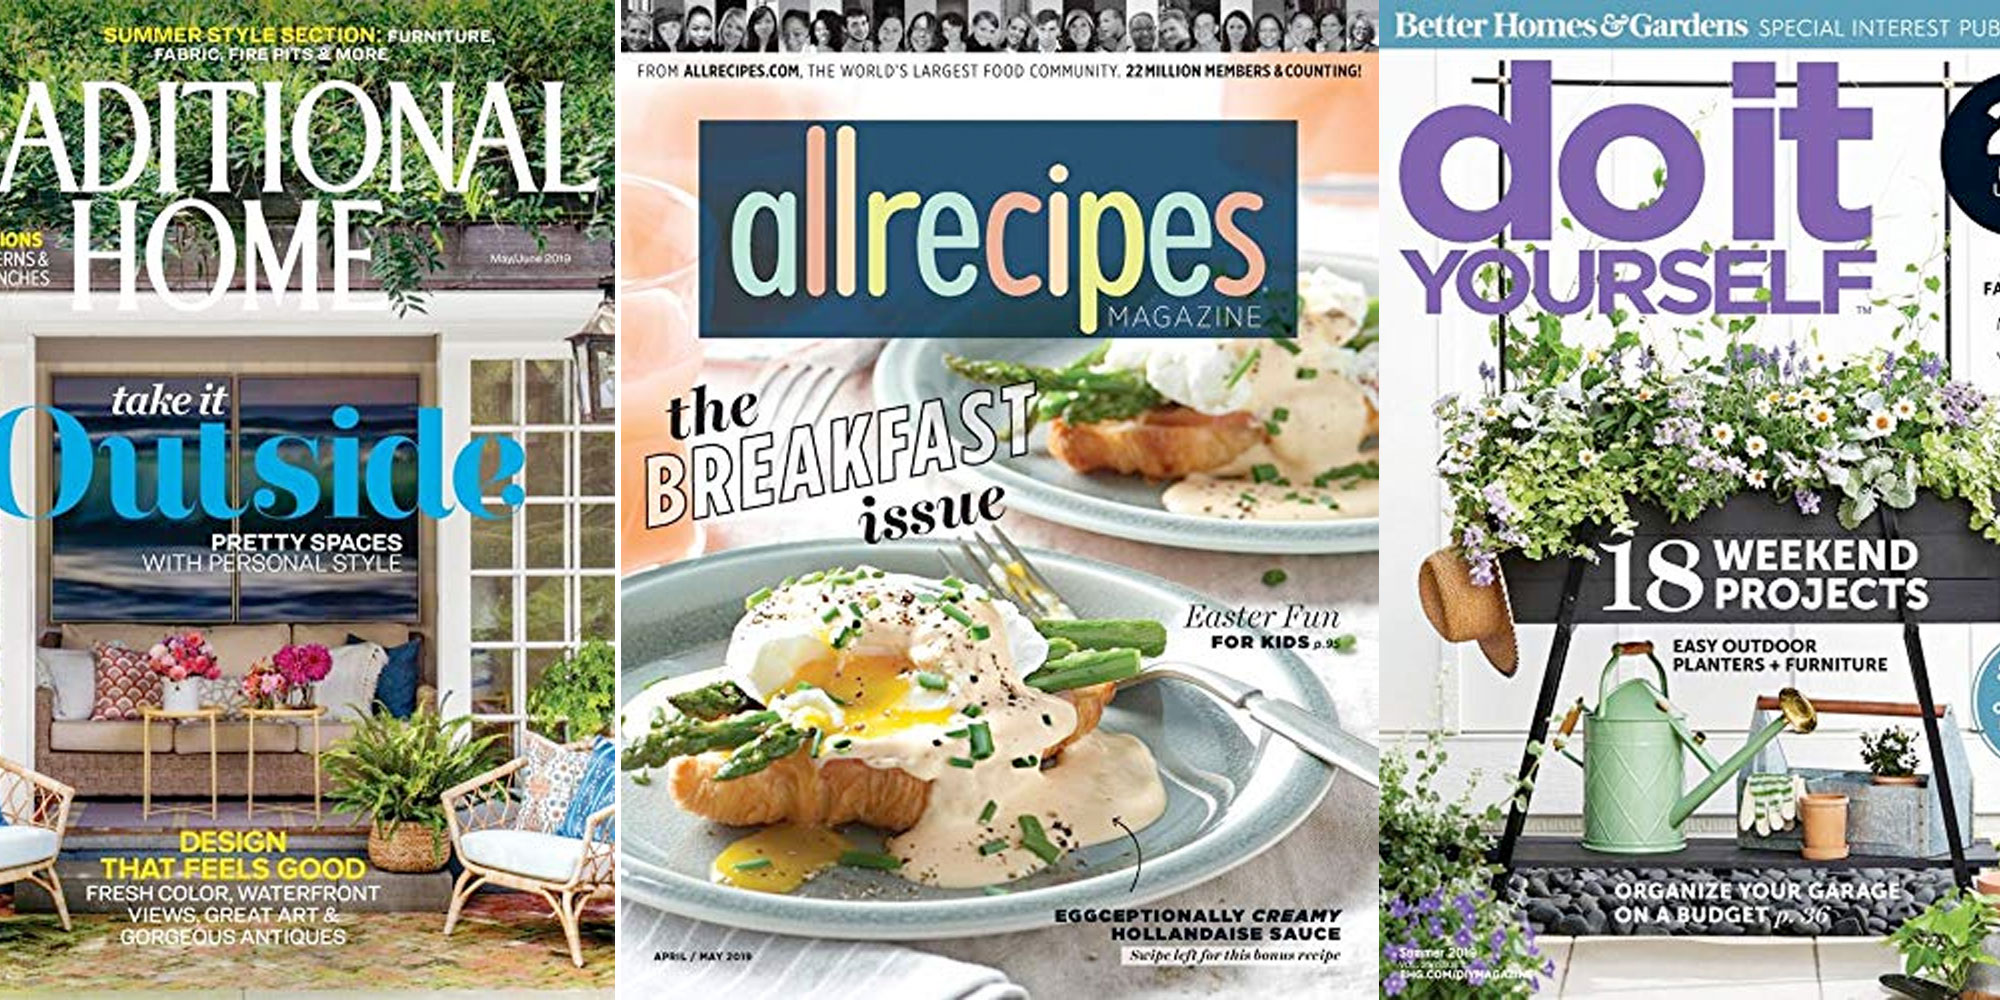 Conquer meals & projects w/ Allrecipes, Do It Yourself, other magazines in Amazon's Gold Box